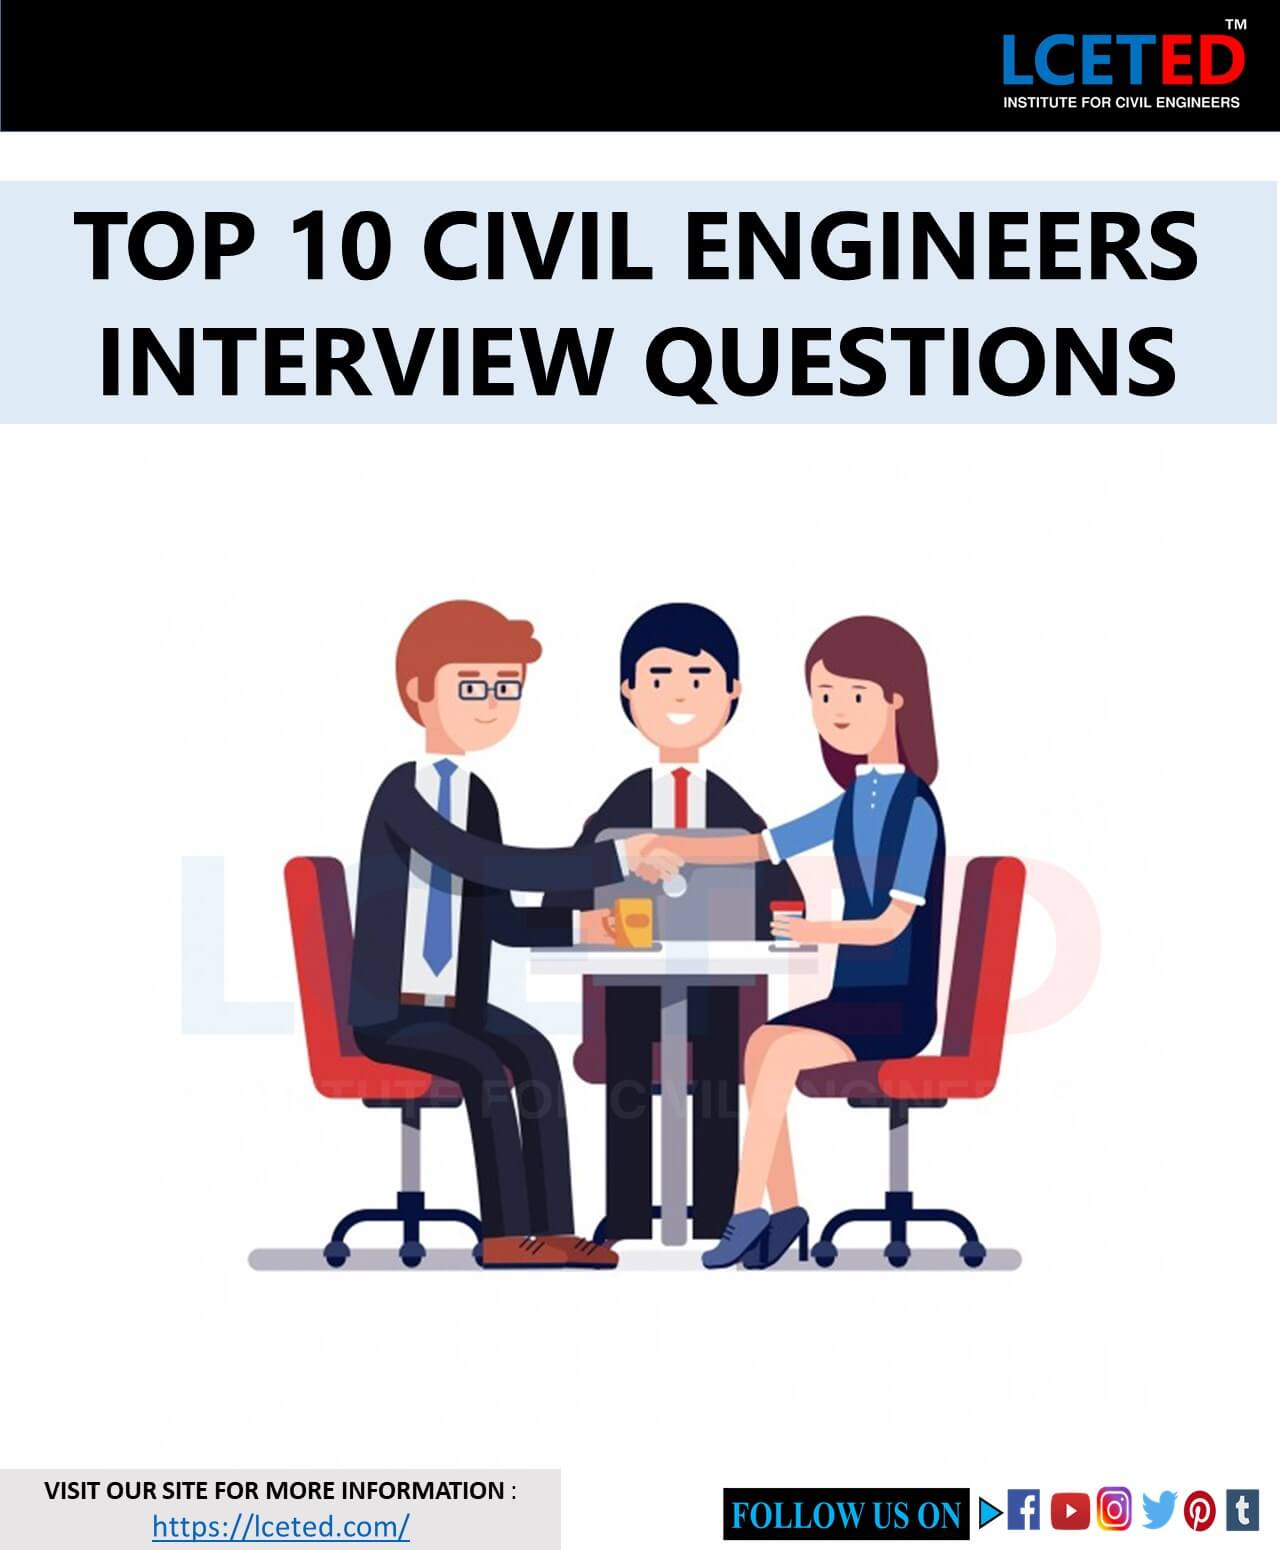 CIVIL ENGINEERS INTERVIEW QUESTIONS